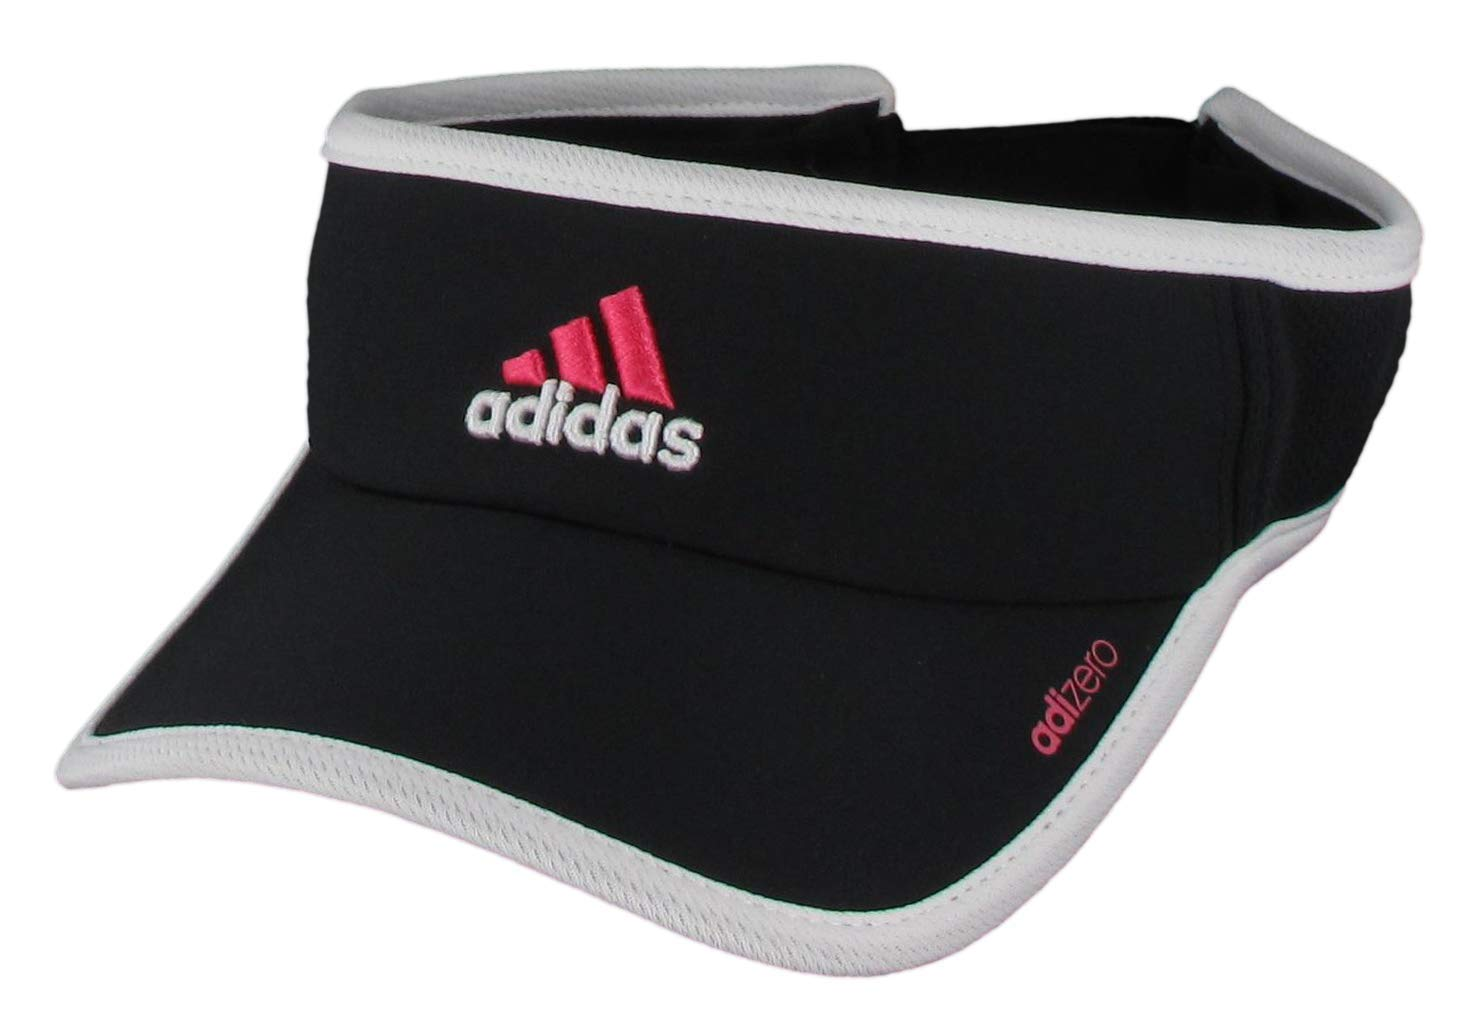 adidas Women's Adizero II Visor, Black/Shock Pink/White, ONE SIZE by adidas